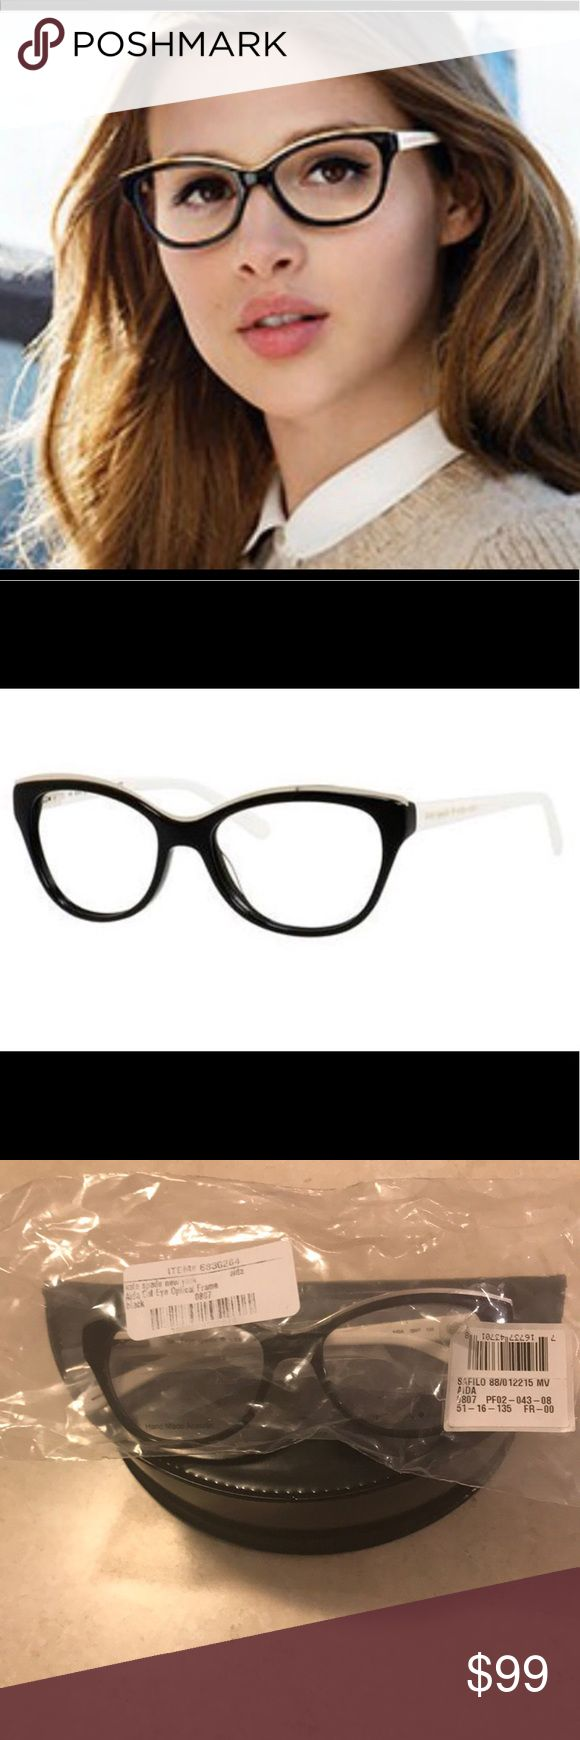 Kate Spade NEW Aida Cat Eye Black & White Frames Kate Spade AIDA is a wonderful choice from the Kate Spade Eyeglasses line. They are a full plastic frame semi-cat style that has a silver metal accent along the top. The front is black and sides are white. These are eligible for prescription lens installation. They are new never worn, I was going to have glasses made and just kept my old frames, so they have demo lenses in them. I do not have the case. Kate Spade Accessories Glasses